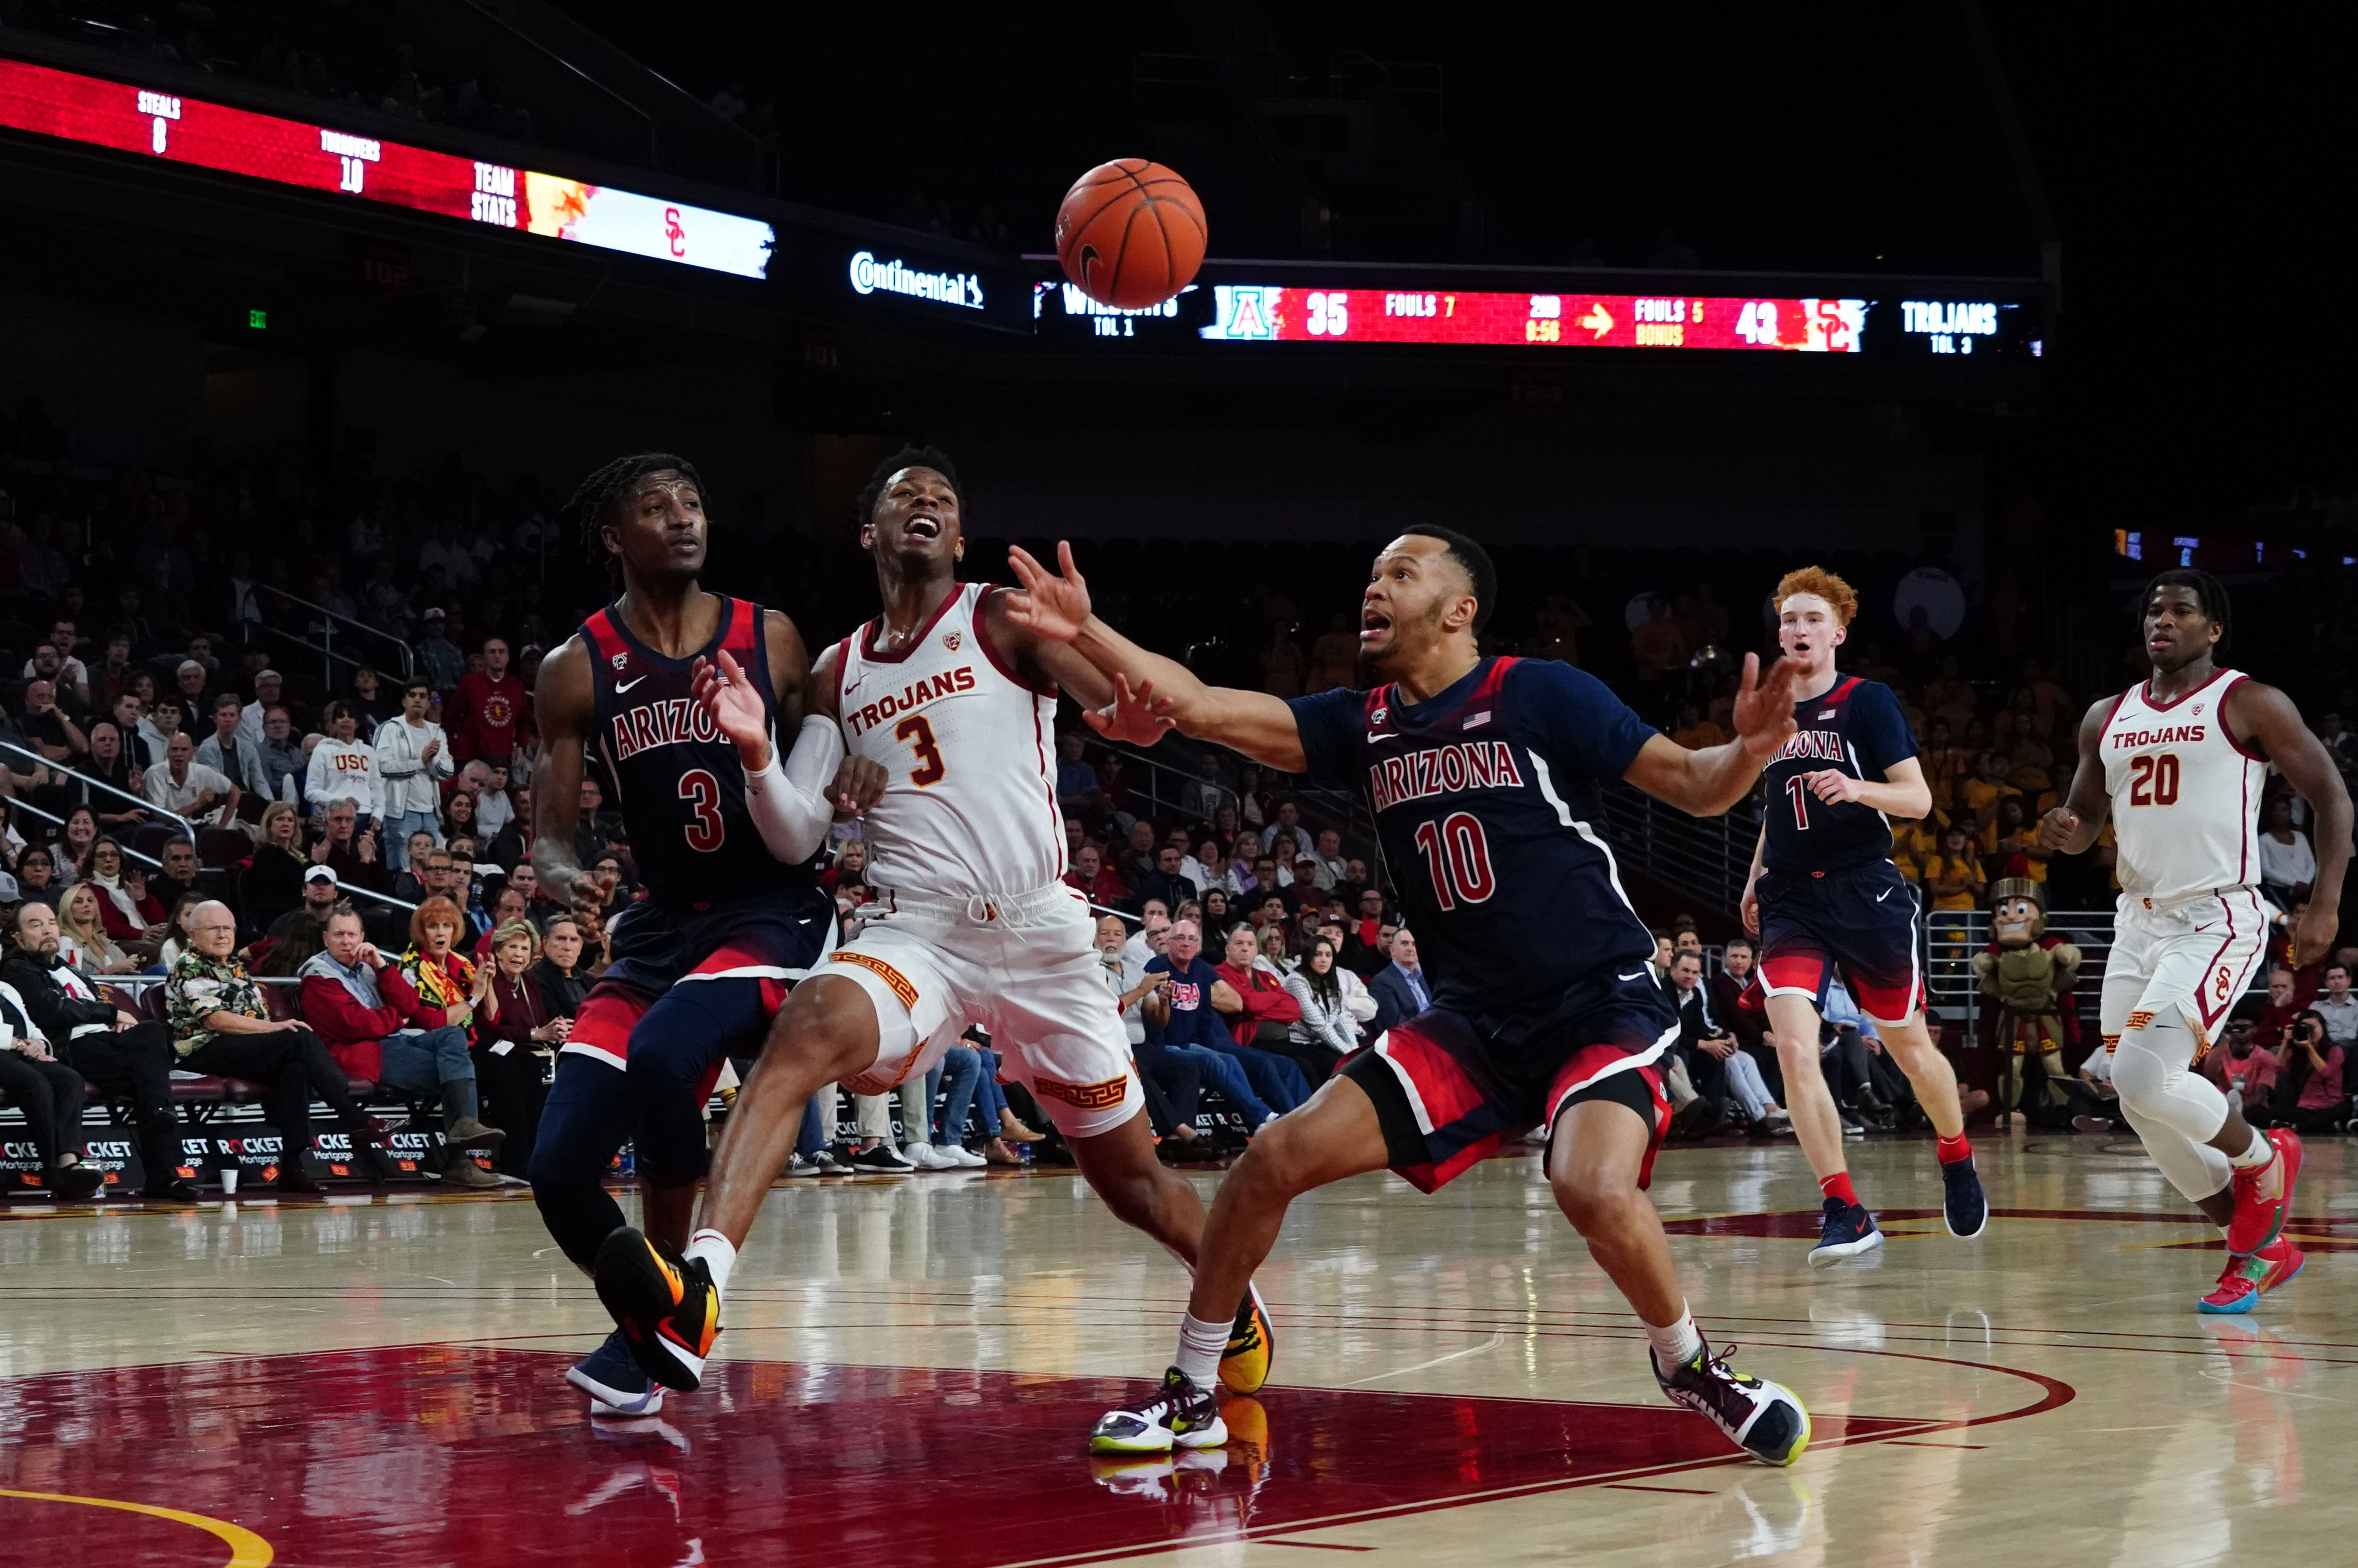 What message was Sean Miller sending in playing zone defense against USC?